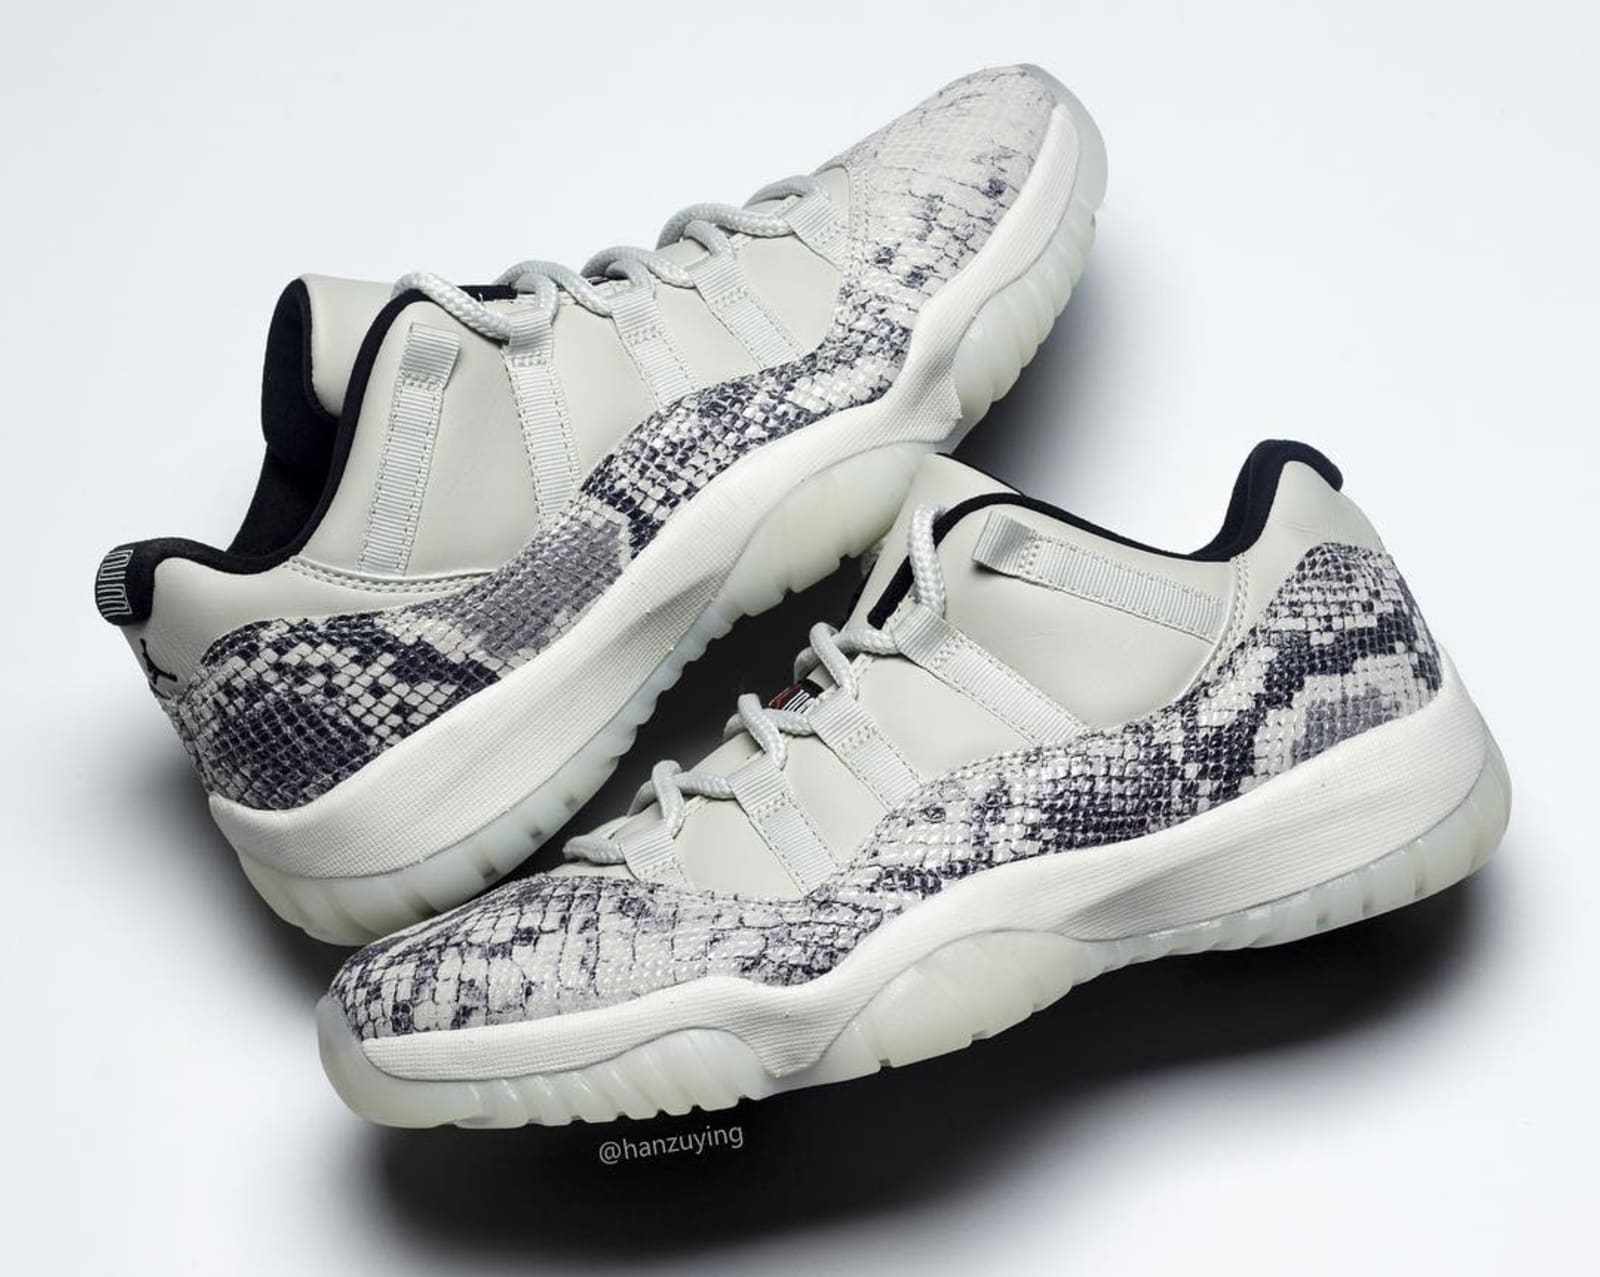 397e5a85577d Detailed Shots of the Brand New  Snakeskin  Air Jordan 11 Low.